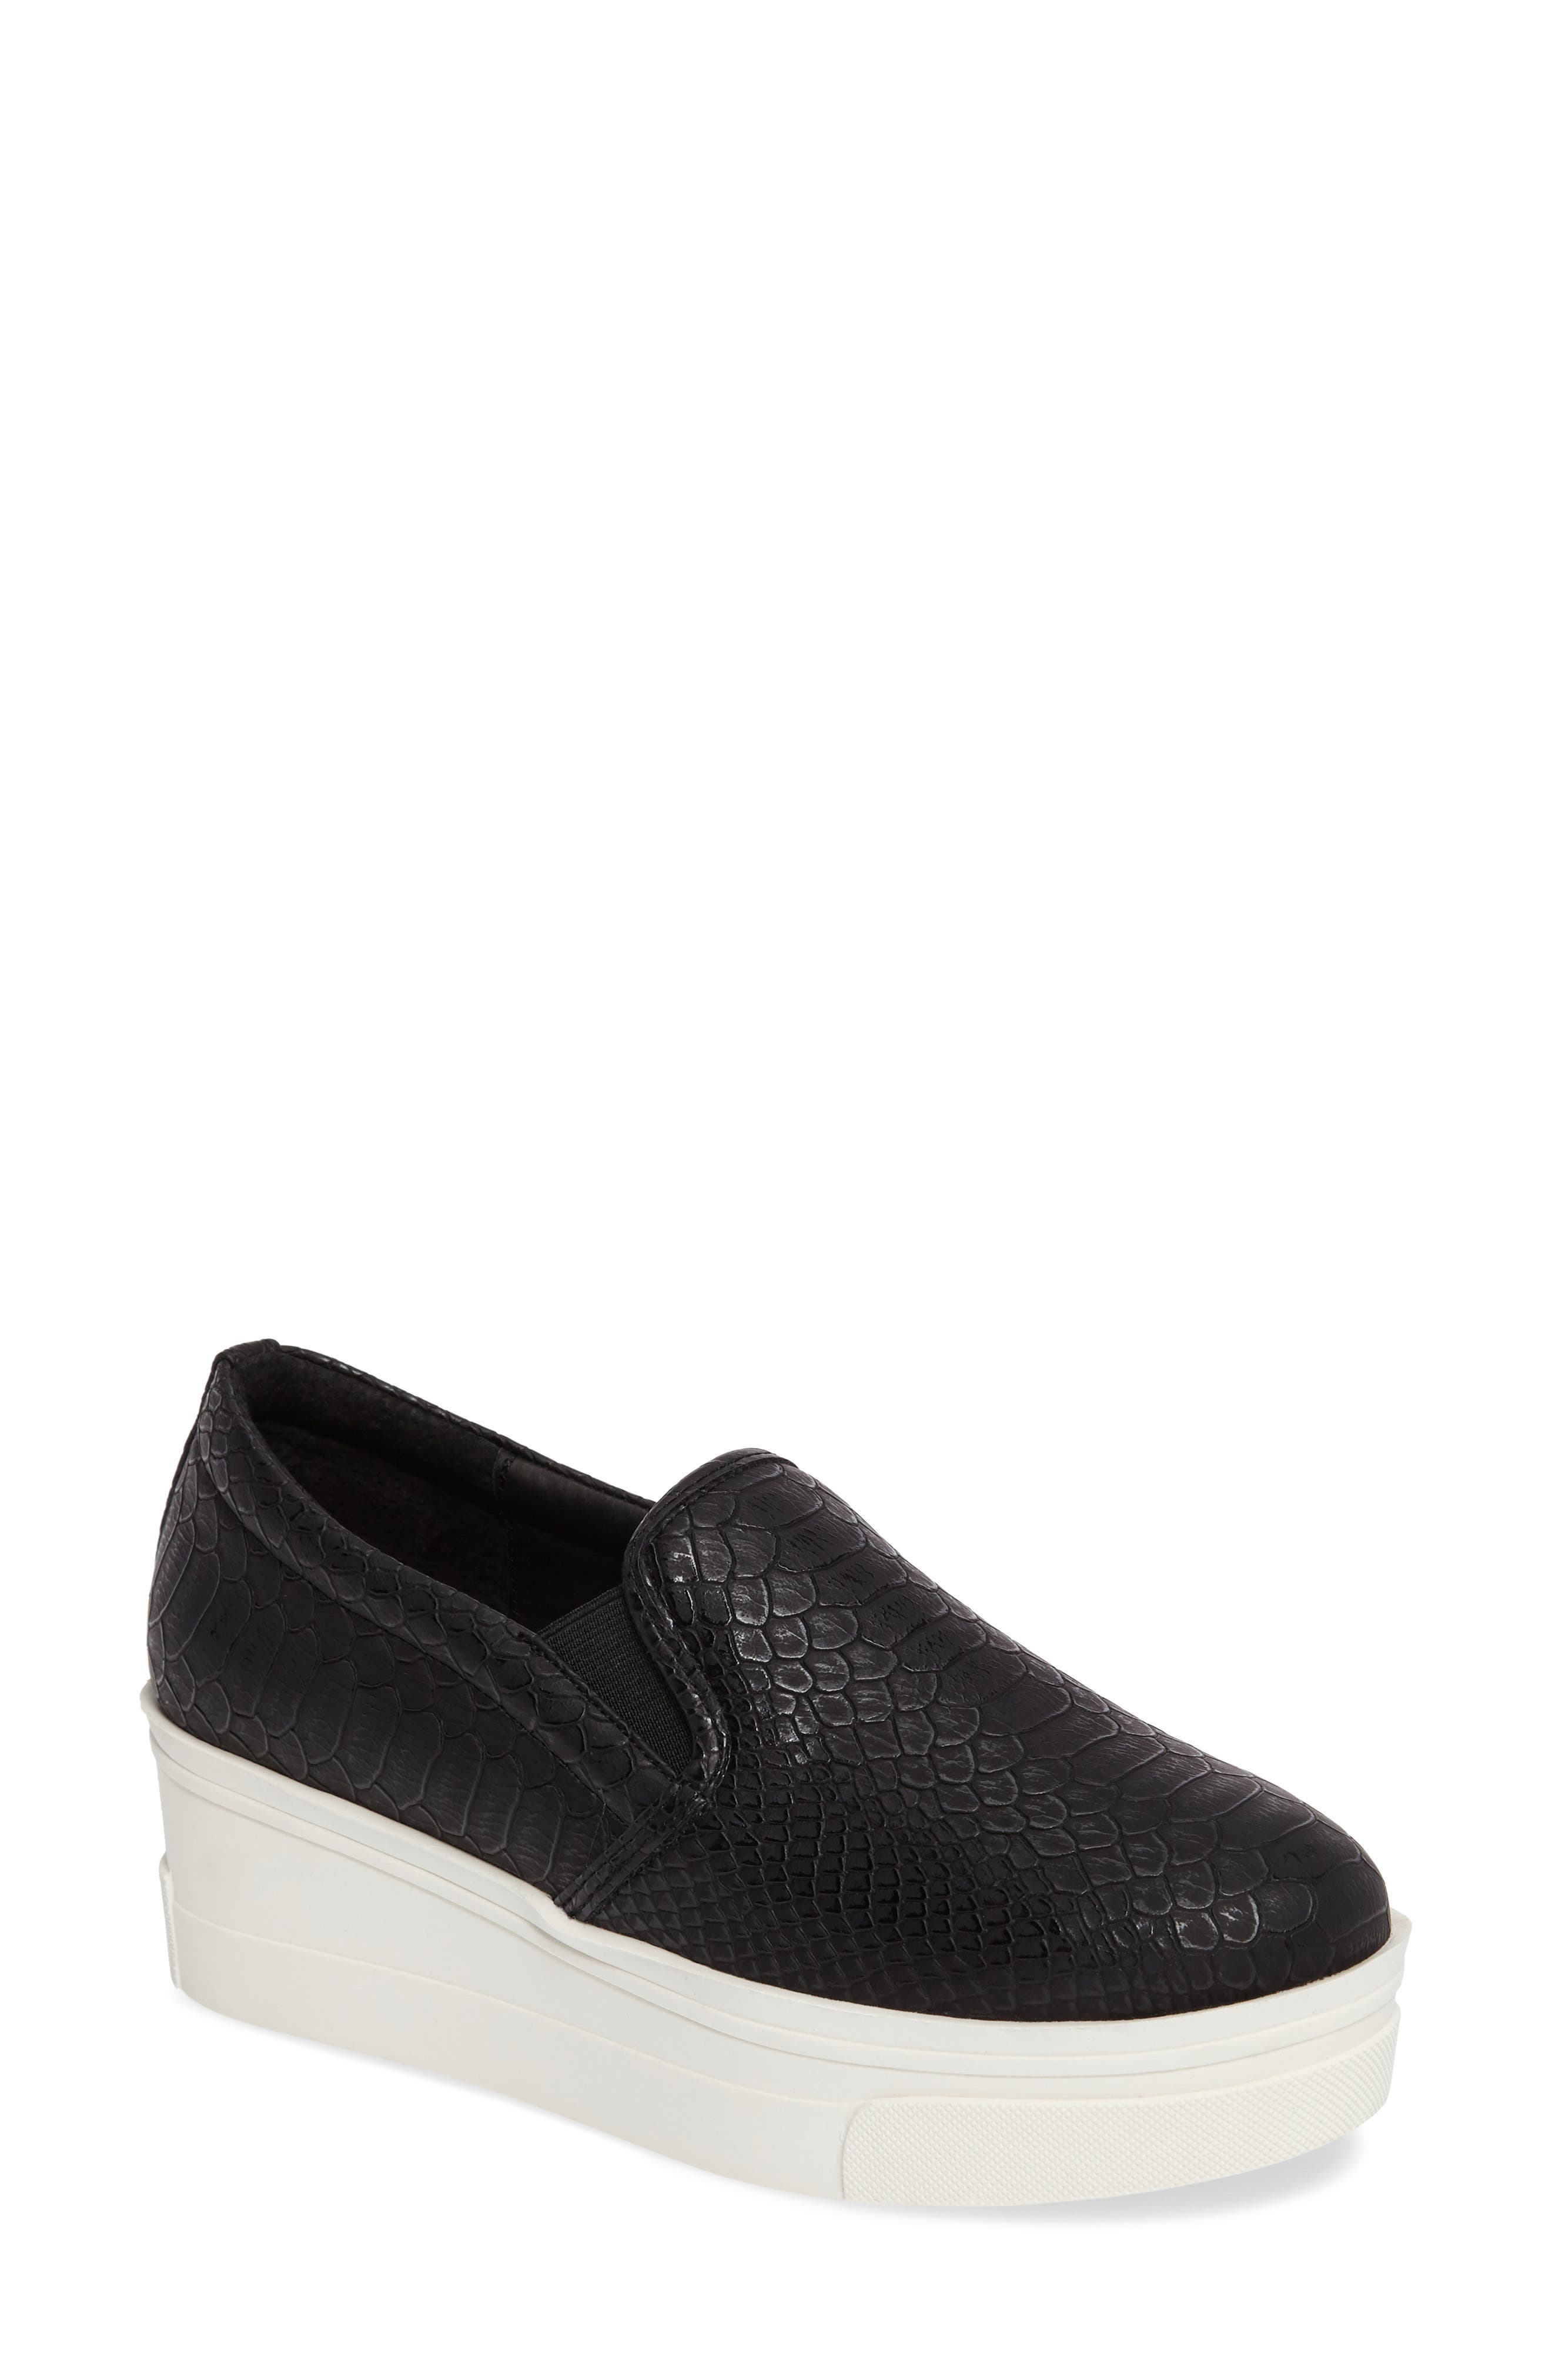 JSlides Genna Slip-On Sneaker (Women)